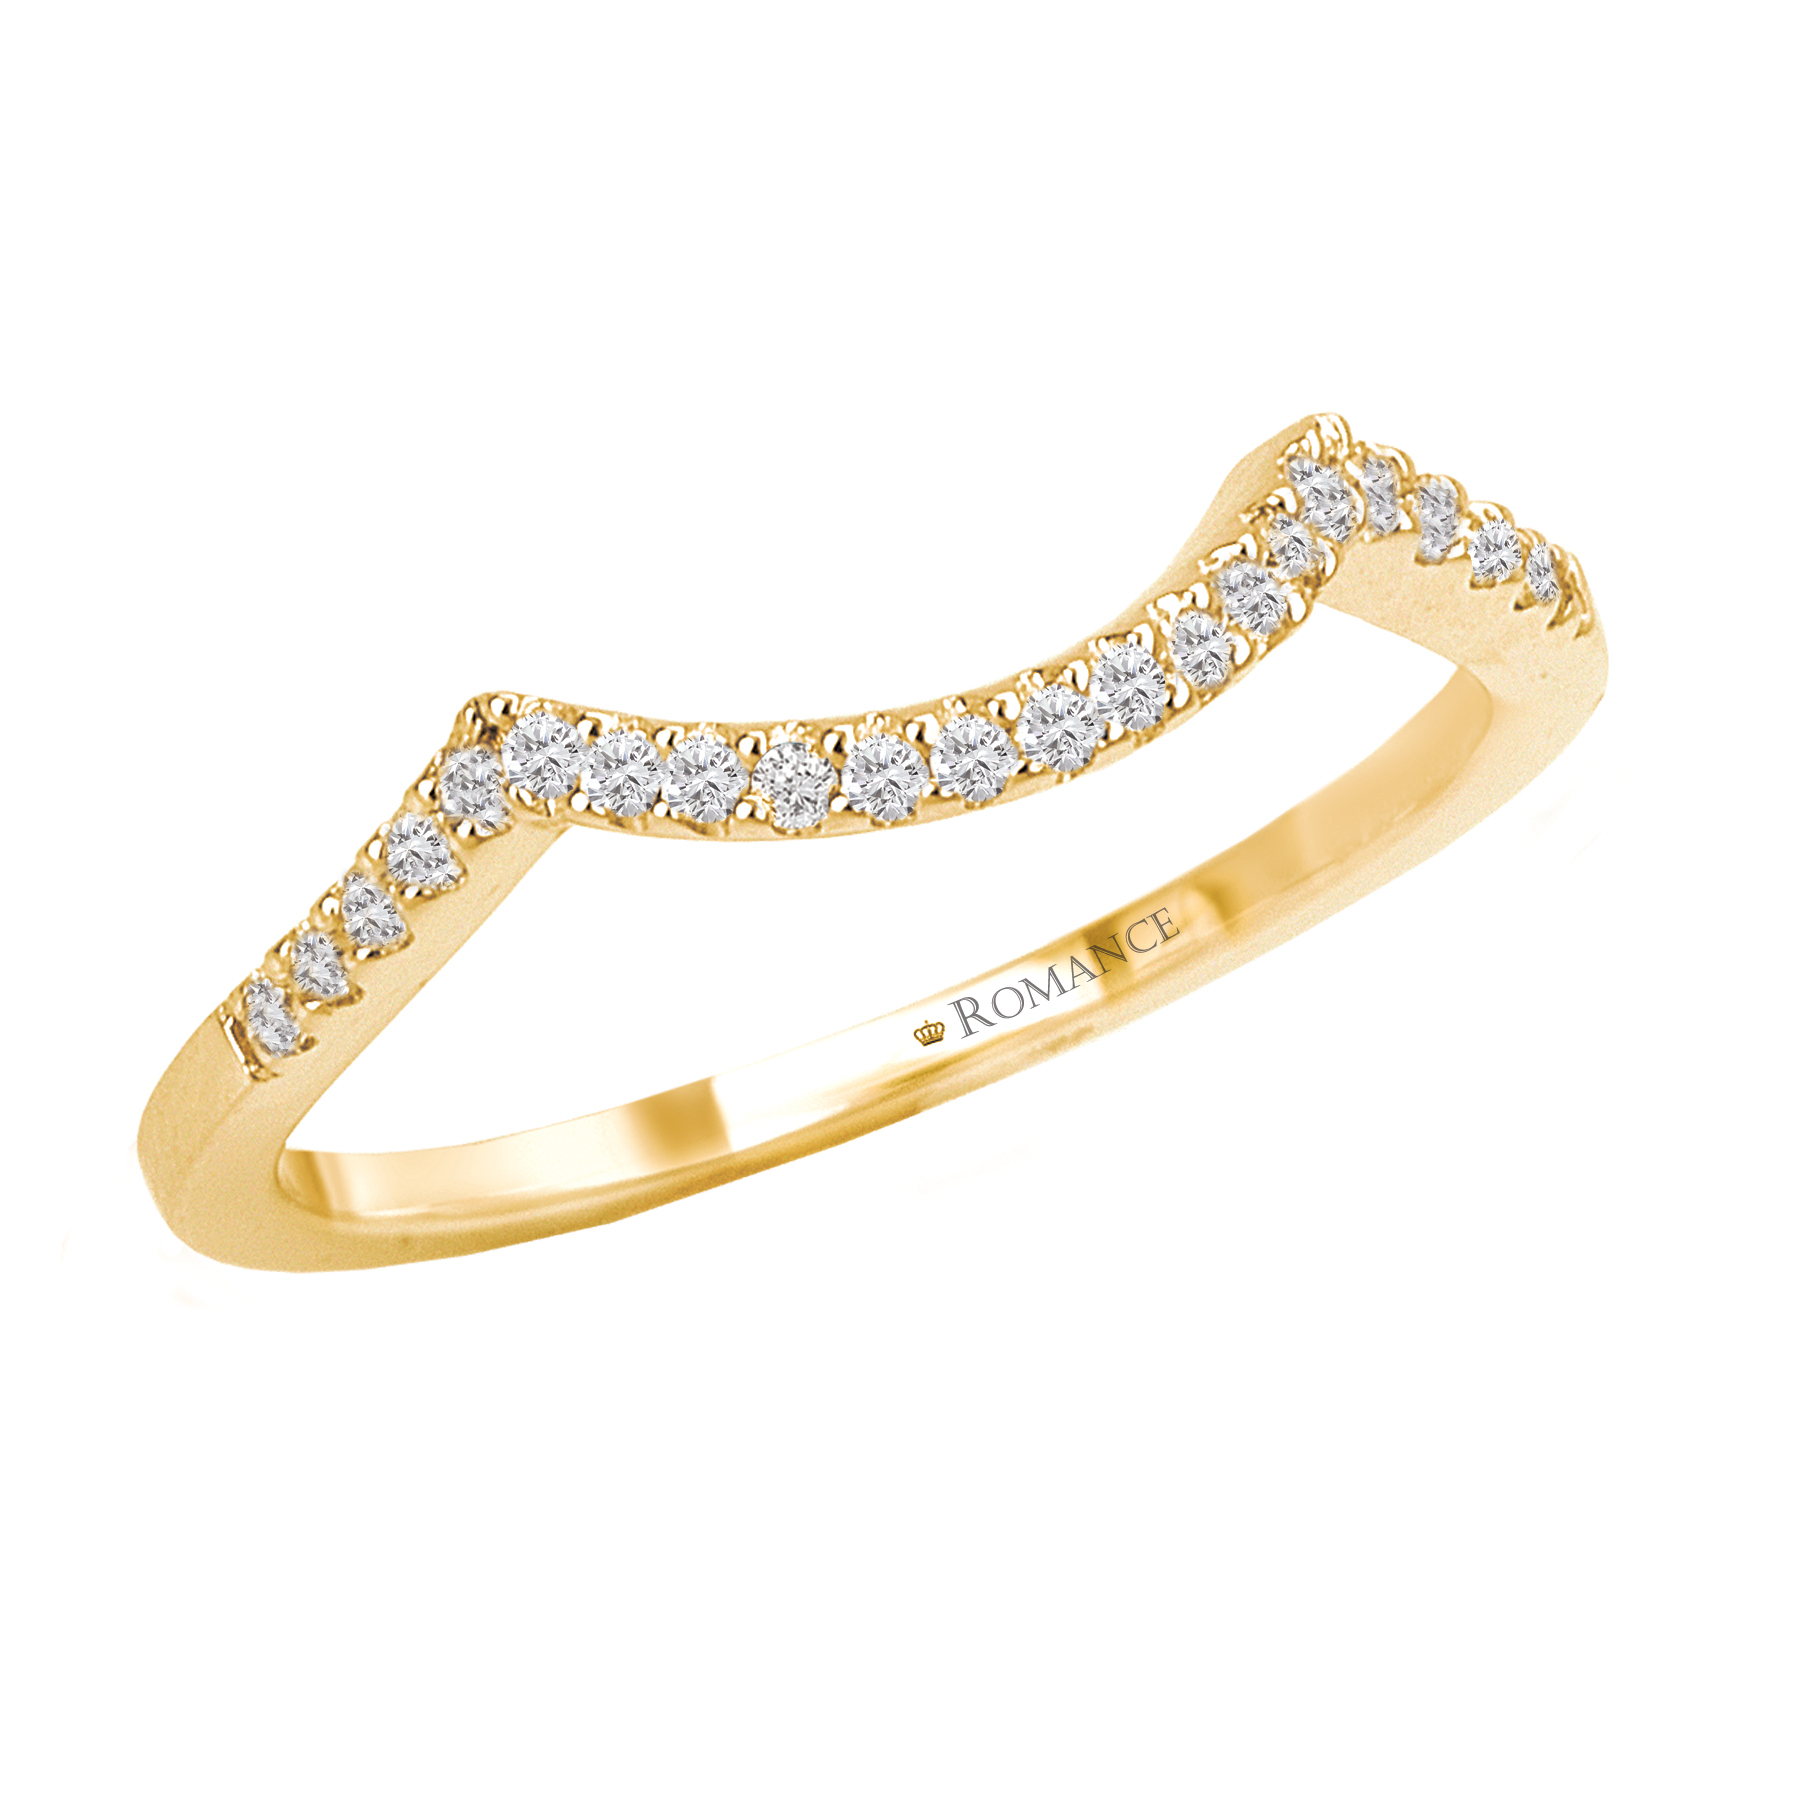 Romantic Bands: Romance Wedding Bands 117133-100WY